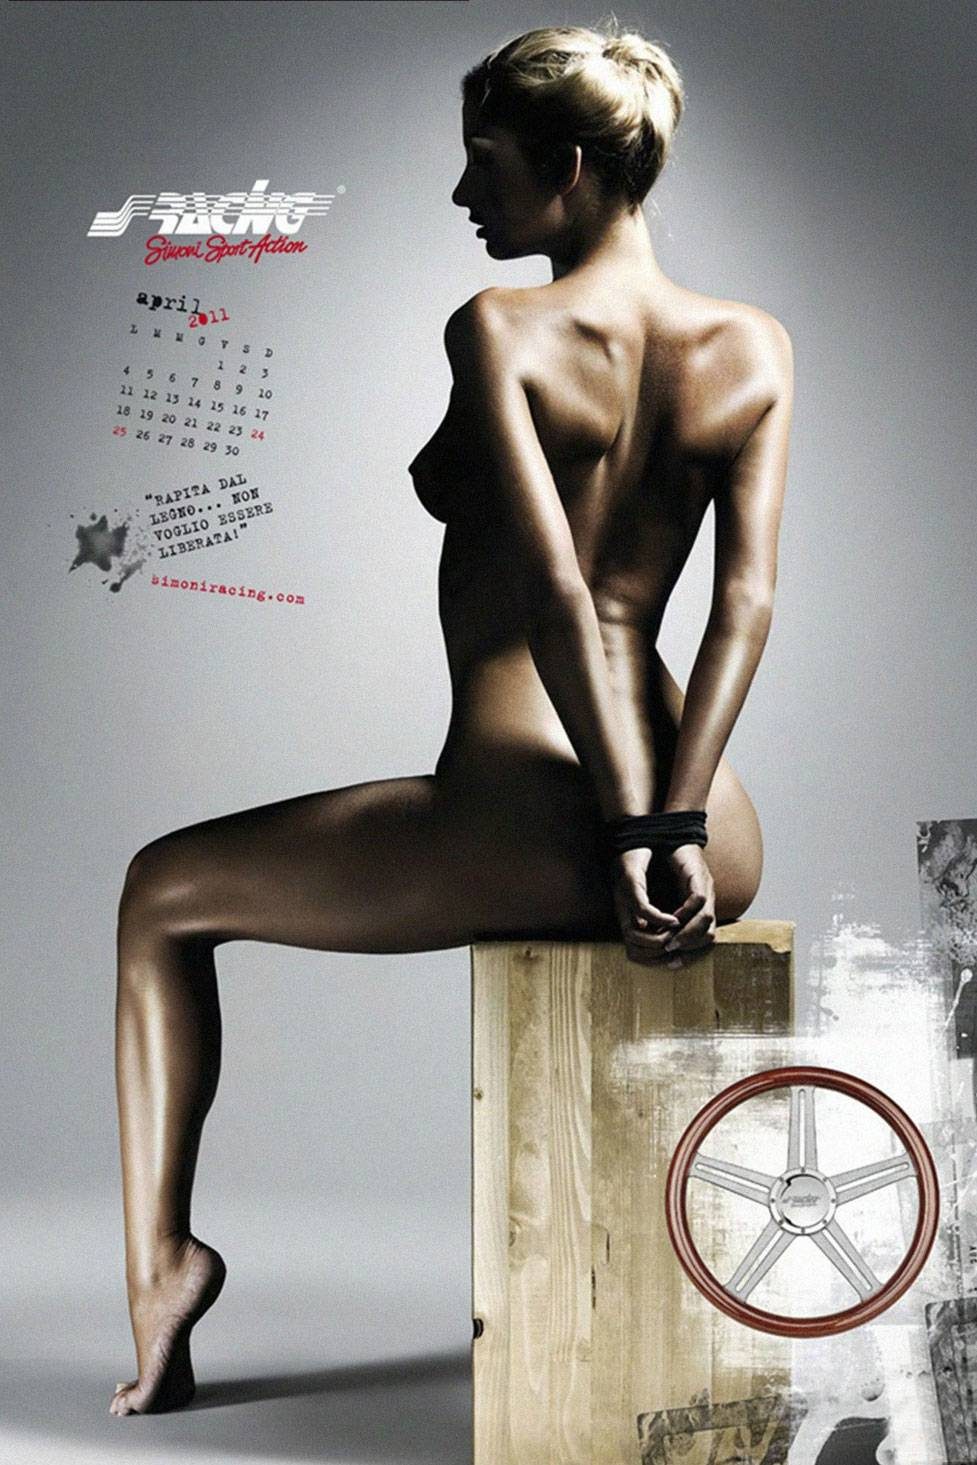 Giada Bellodi for Simoni Racing calendar 2011